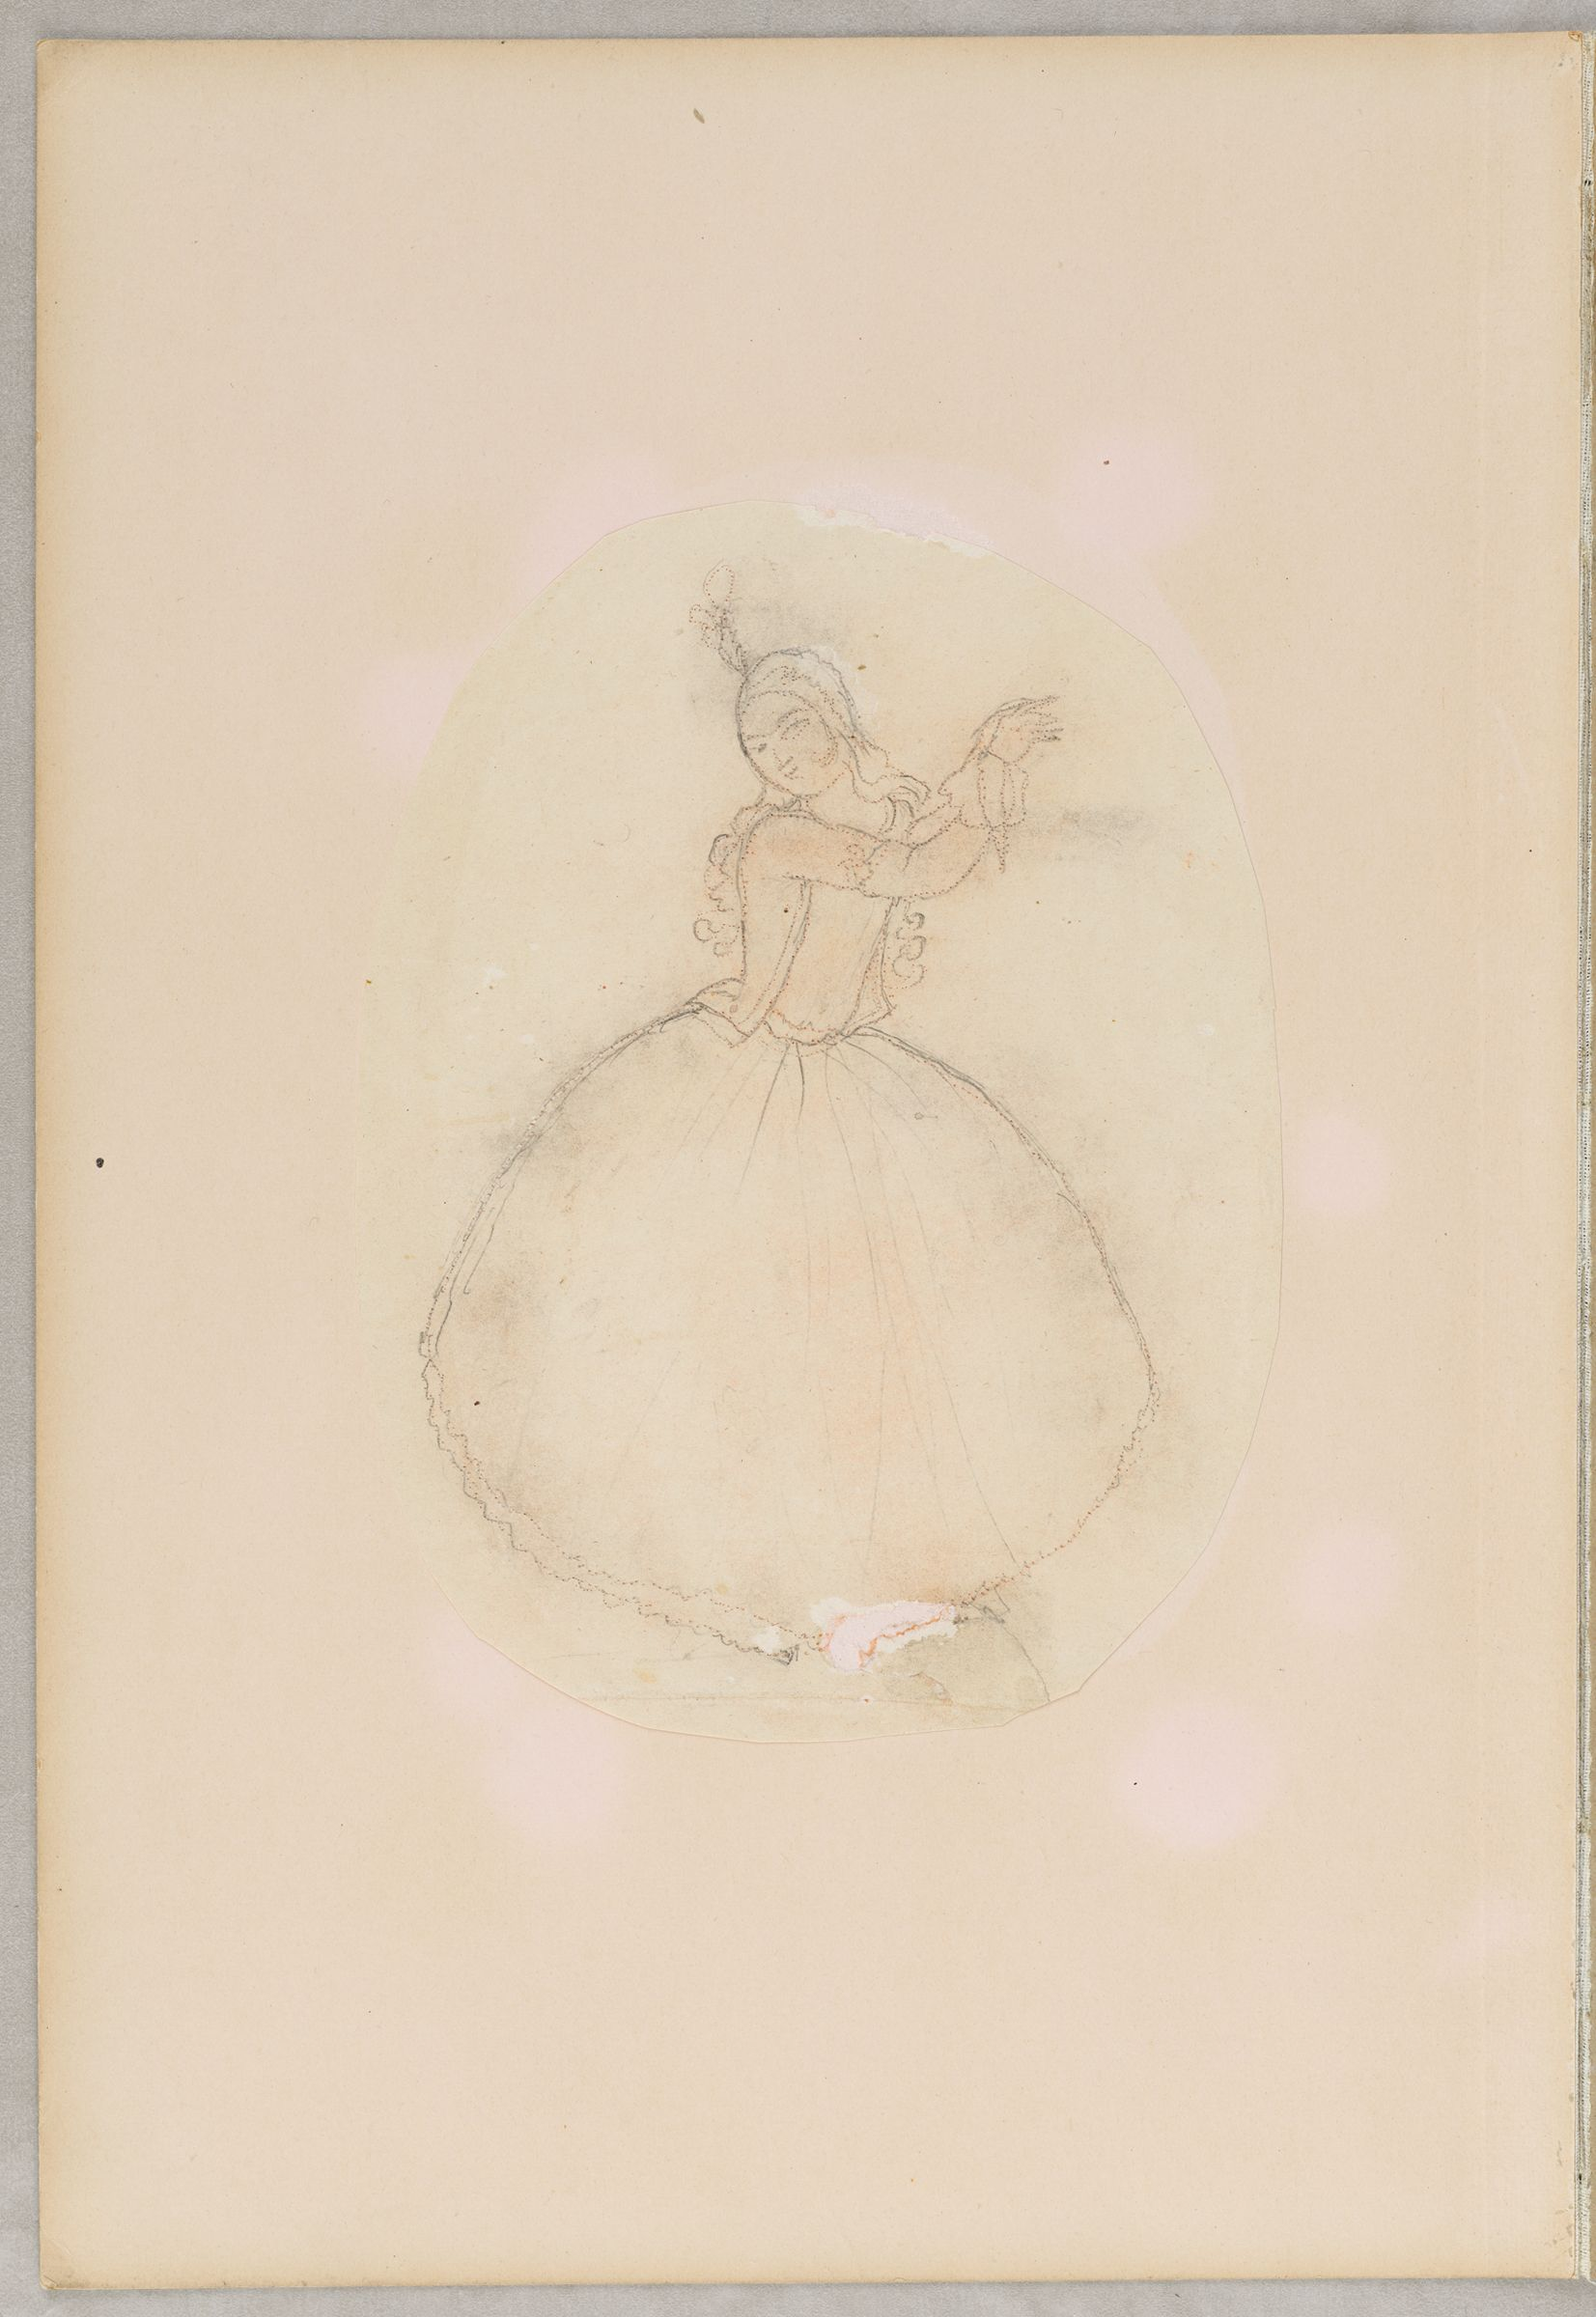 Folio 8 From An Album Of Drawings And Paintings: Dancer (Recto); Standing Youth With Waterpipe (Verso)